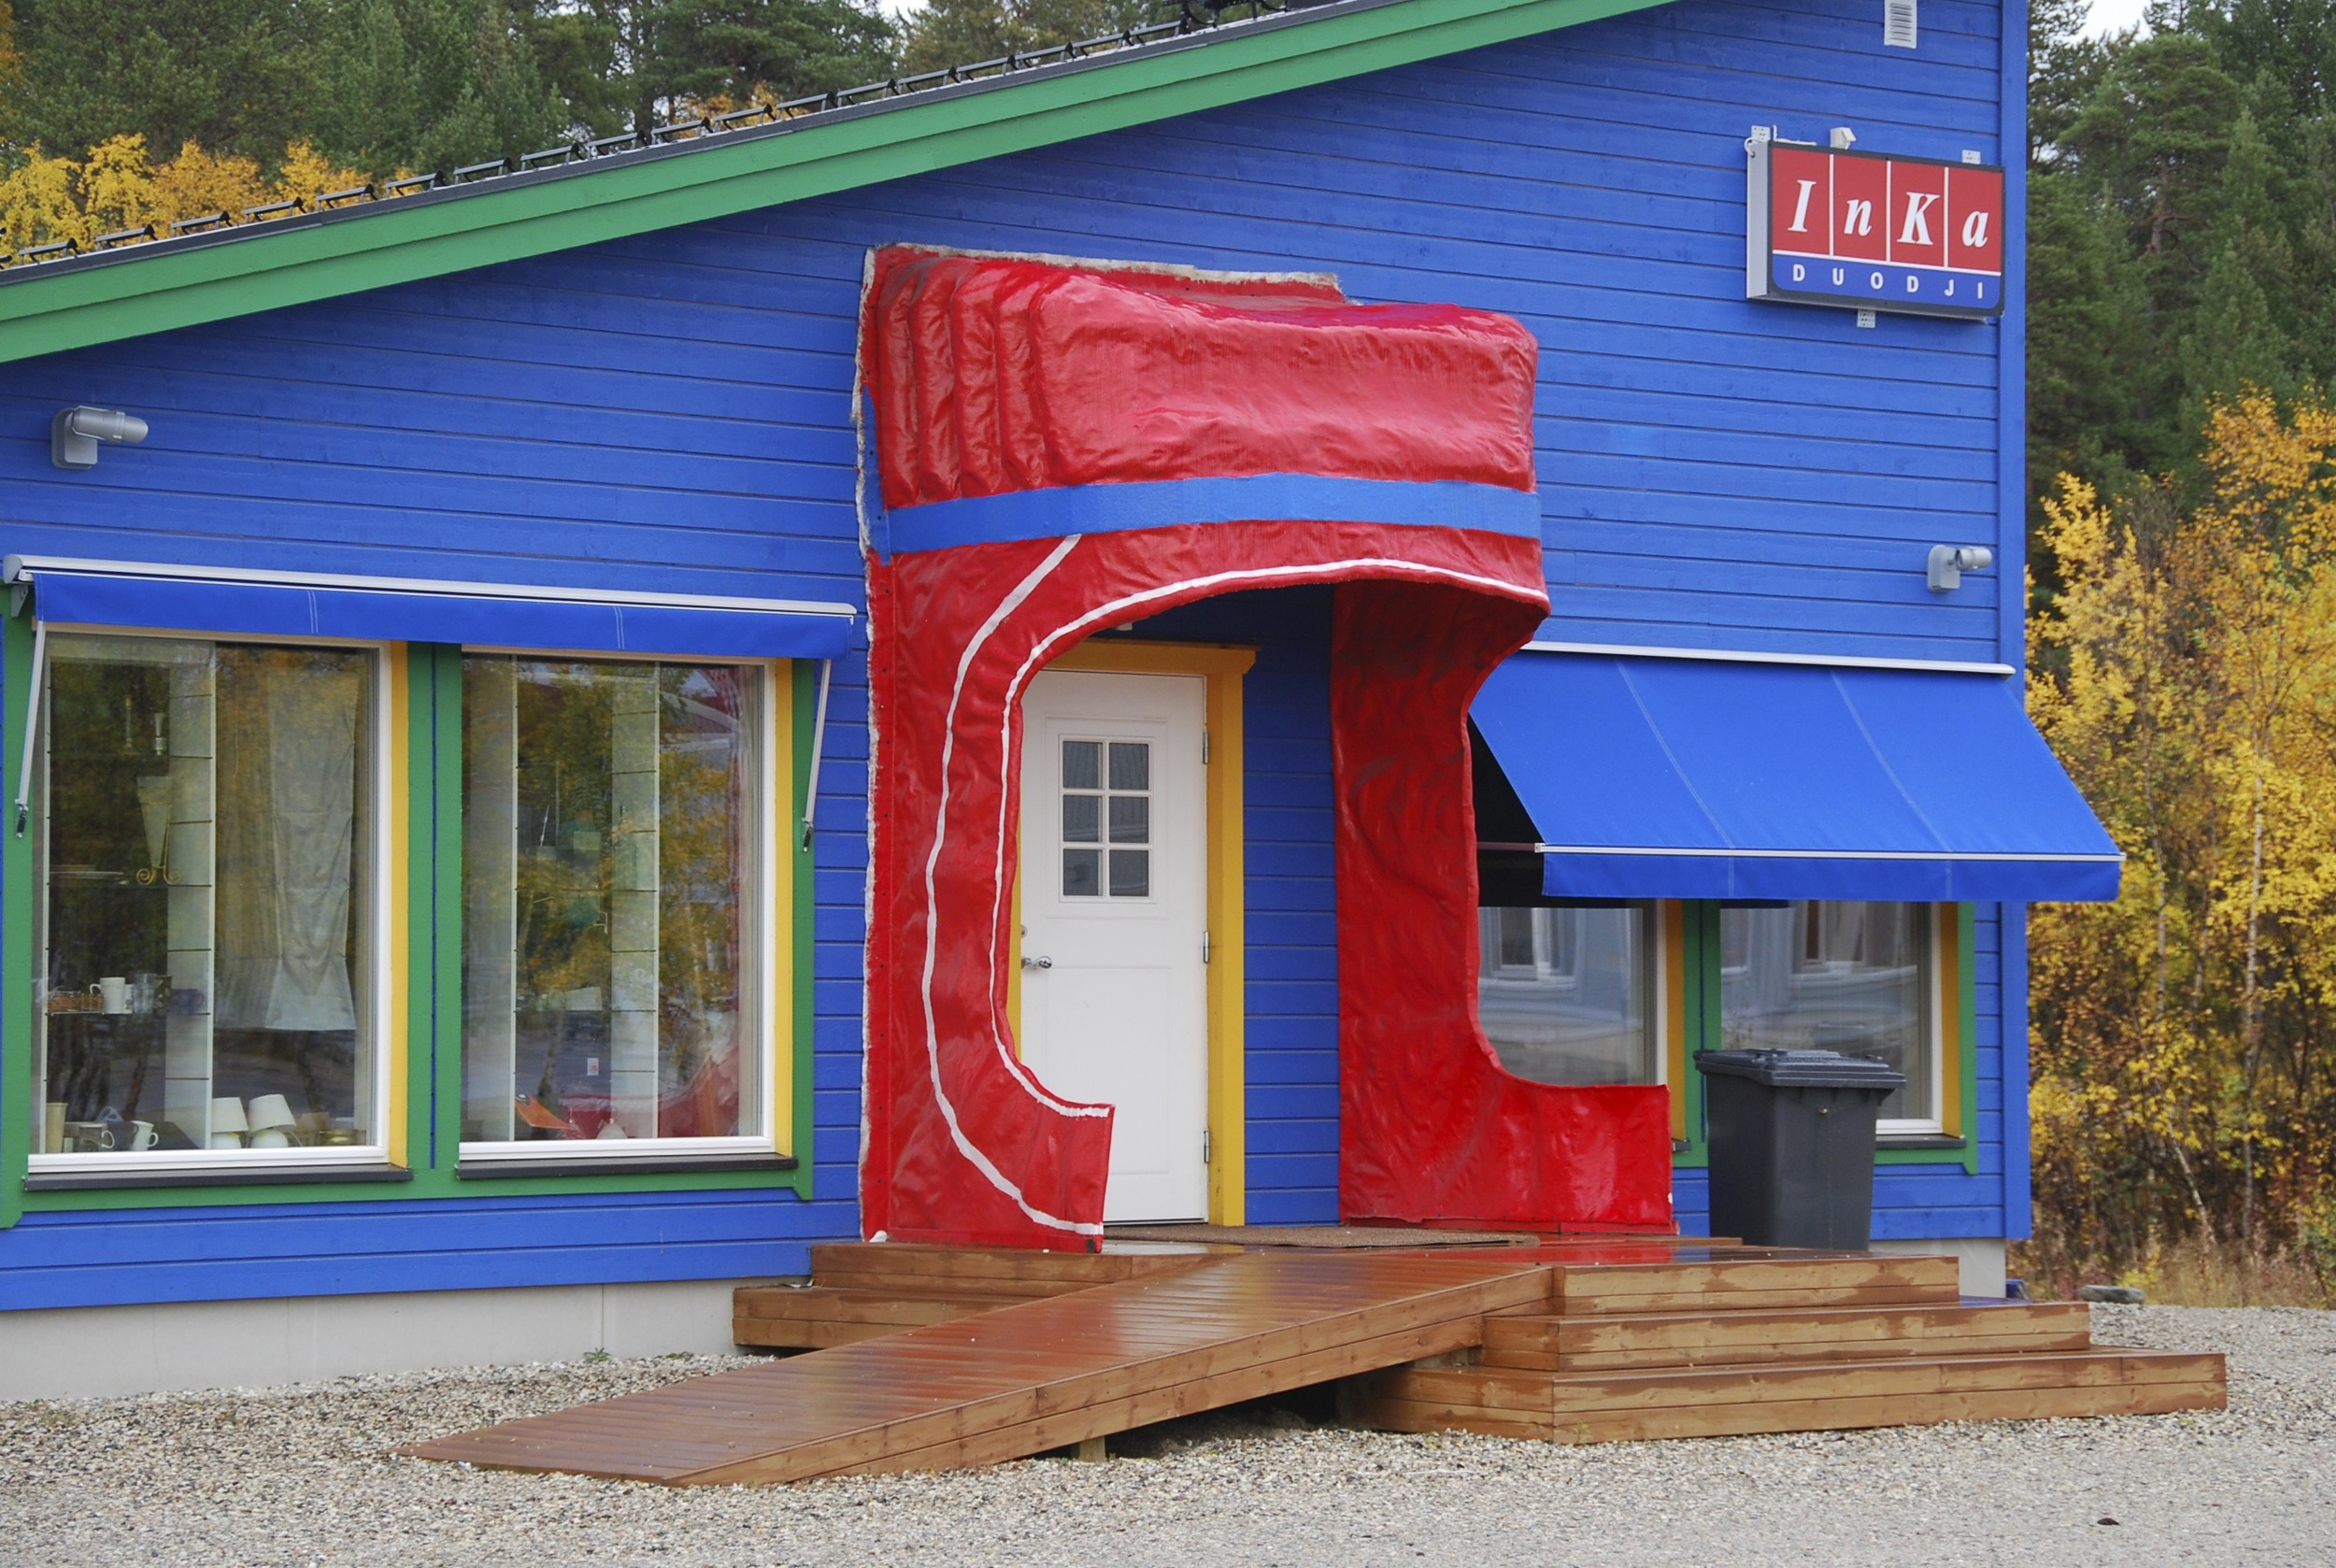 A handcraft shop in Karasjok that has a hilarious door covering that mimics a woman's cap.